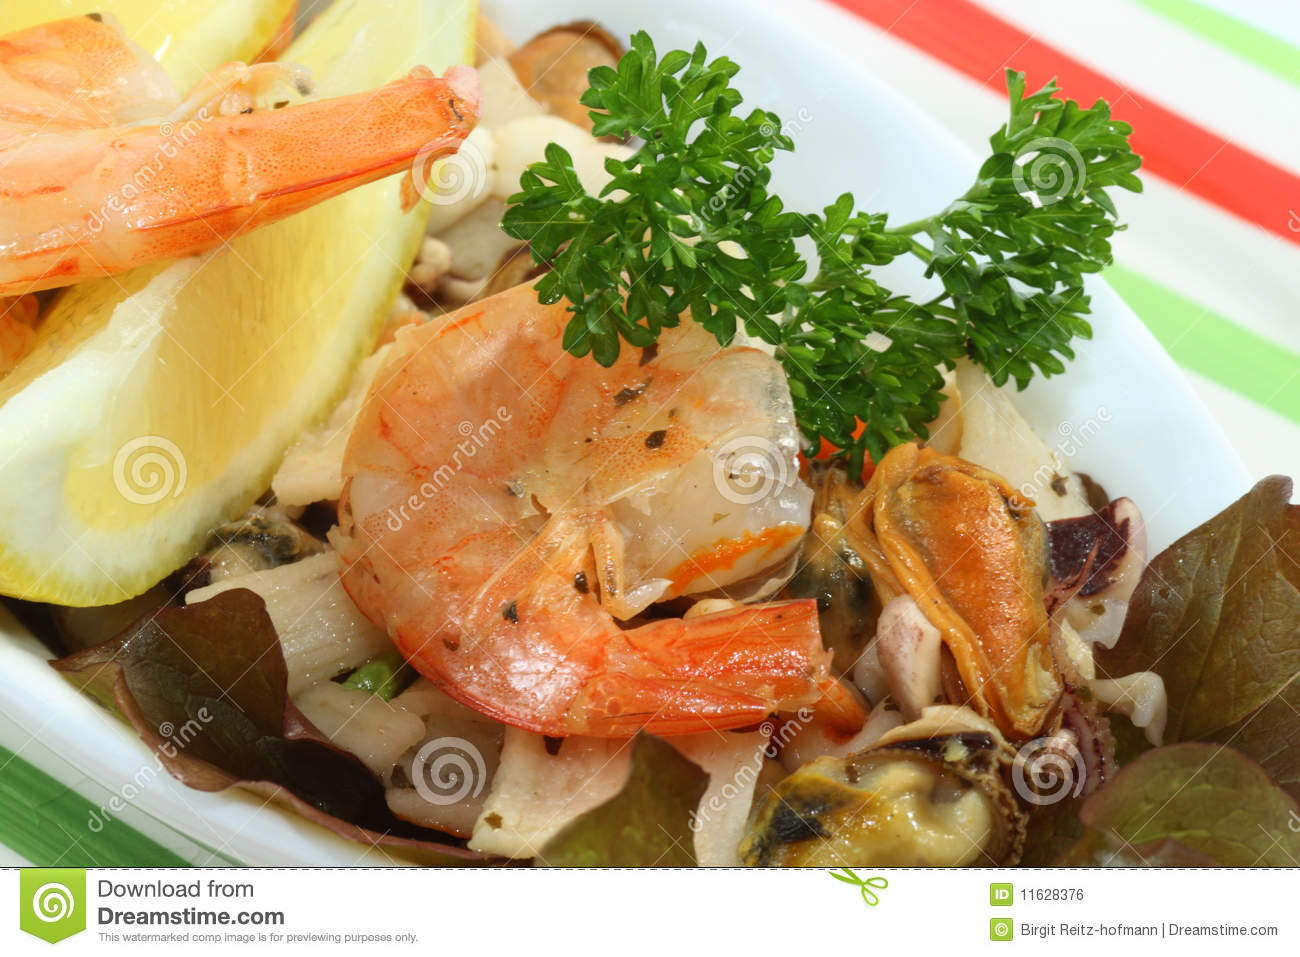 Seafood Dinner Royalty Free Stock Image - Image: 11628376